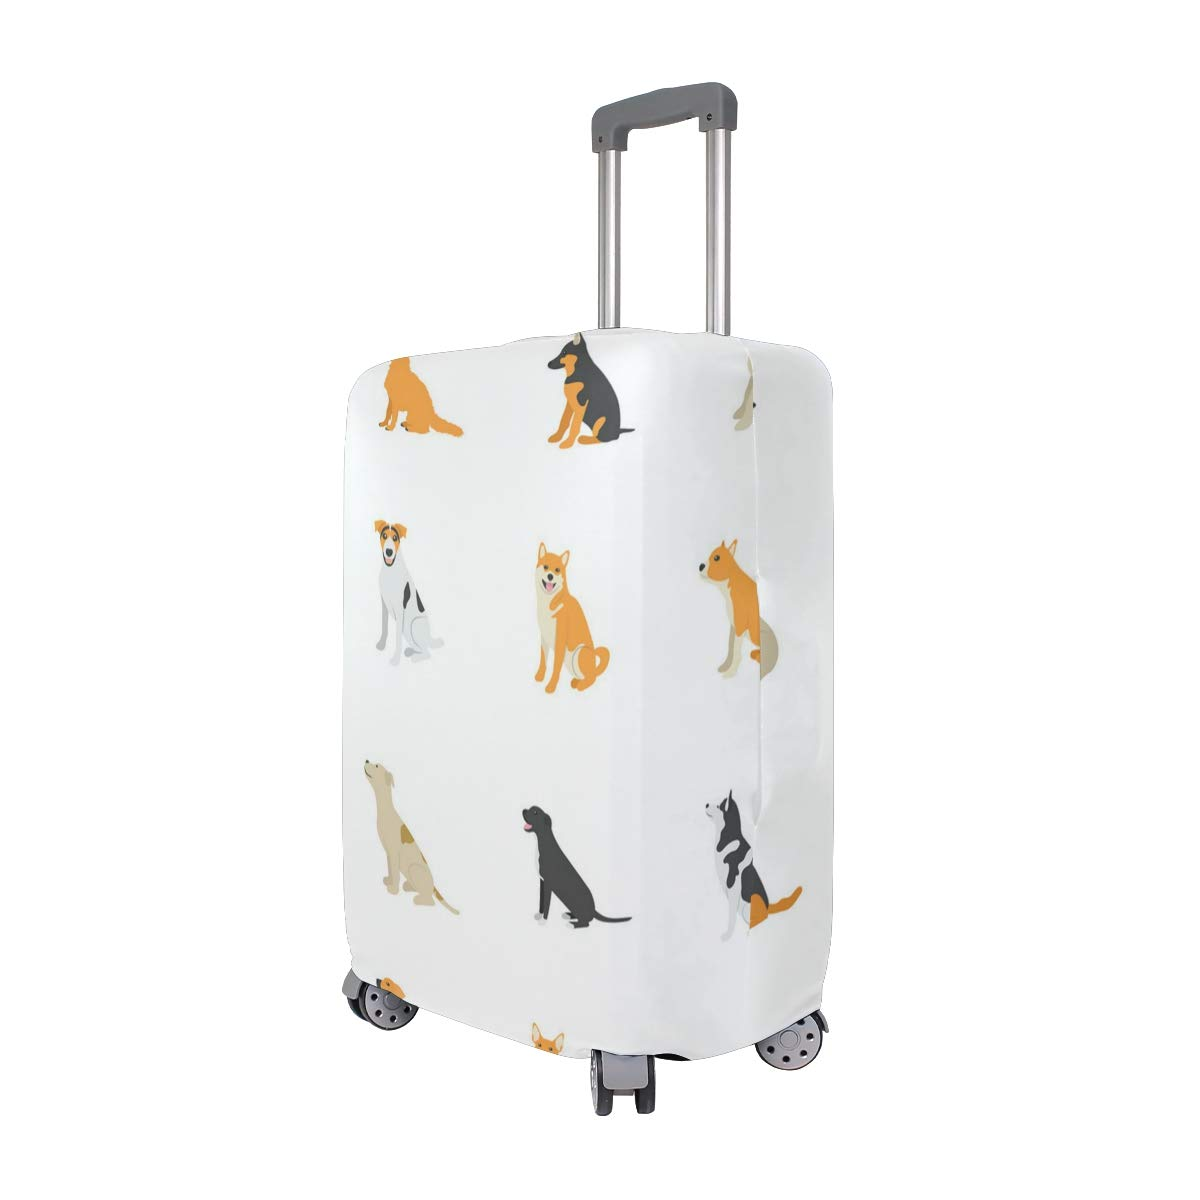 Dog Dry Shampoo Bat Traveler Lightweight Rotating Luggage Protector Case Can Carry With You Can Expand Travel Bag Trolley Rolling Luggage Protector Case